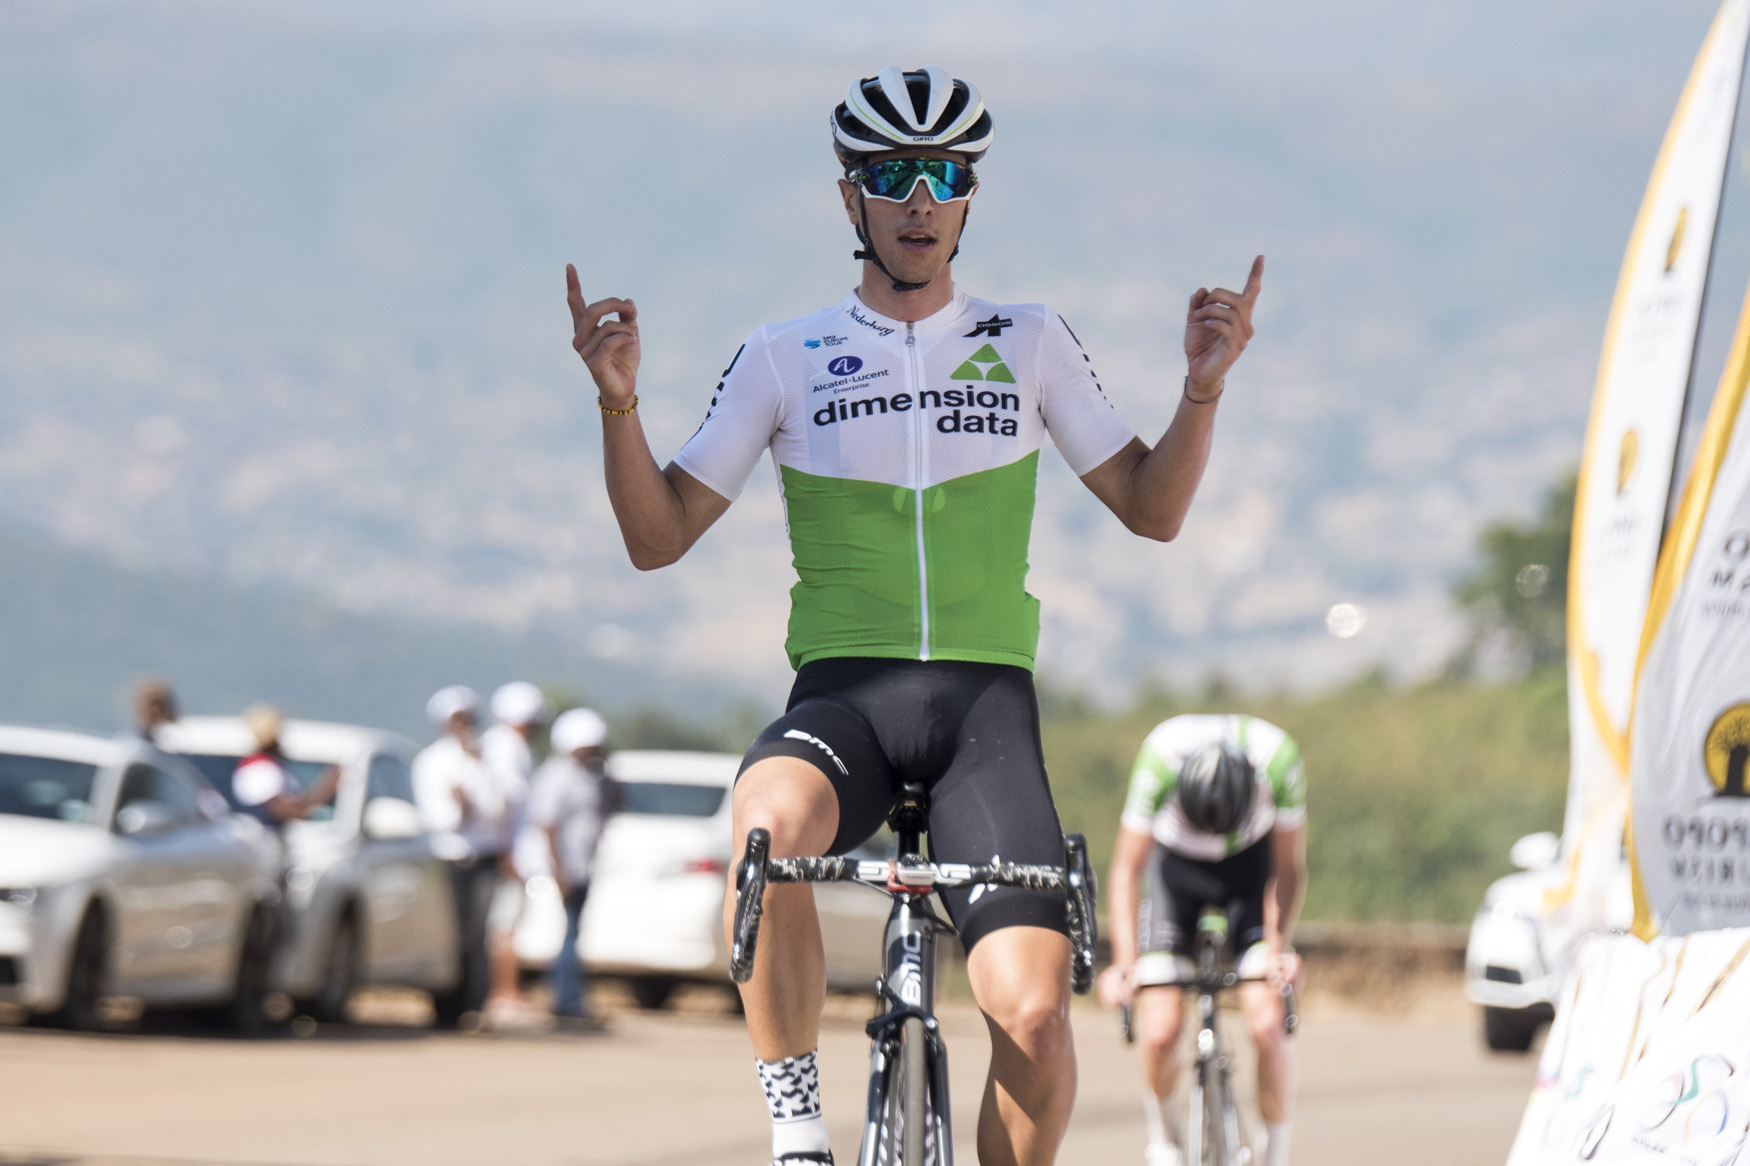 Team Dimension Data Continental's Samuele Battistella does the victory salute atop the Old Coach Road after winning the stage in  02:32:26  from Tzaneen to Old Coach Road, Mt. Agatha, on Stage 3 of the 2019 Tour de Limpopo (UCI 2.2) from 14-18 May © Tour de Limpopo/Andrew Mc Fadden